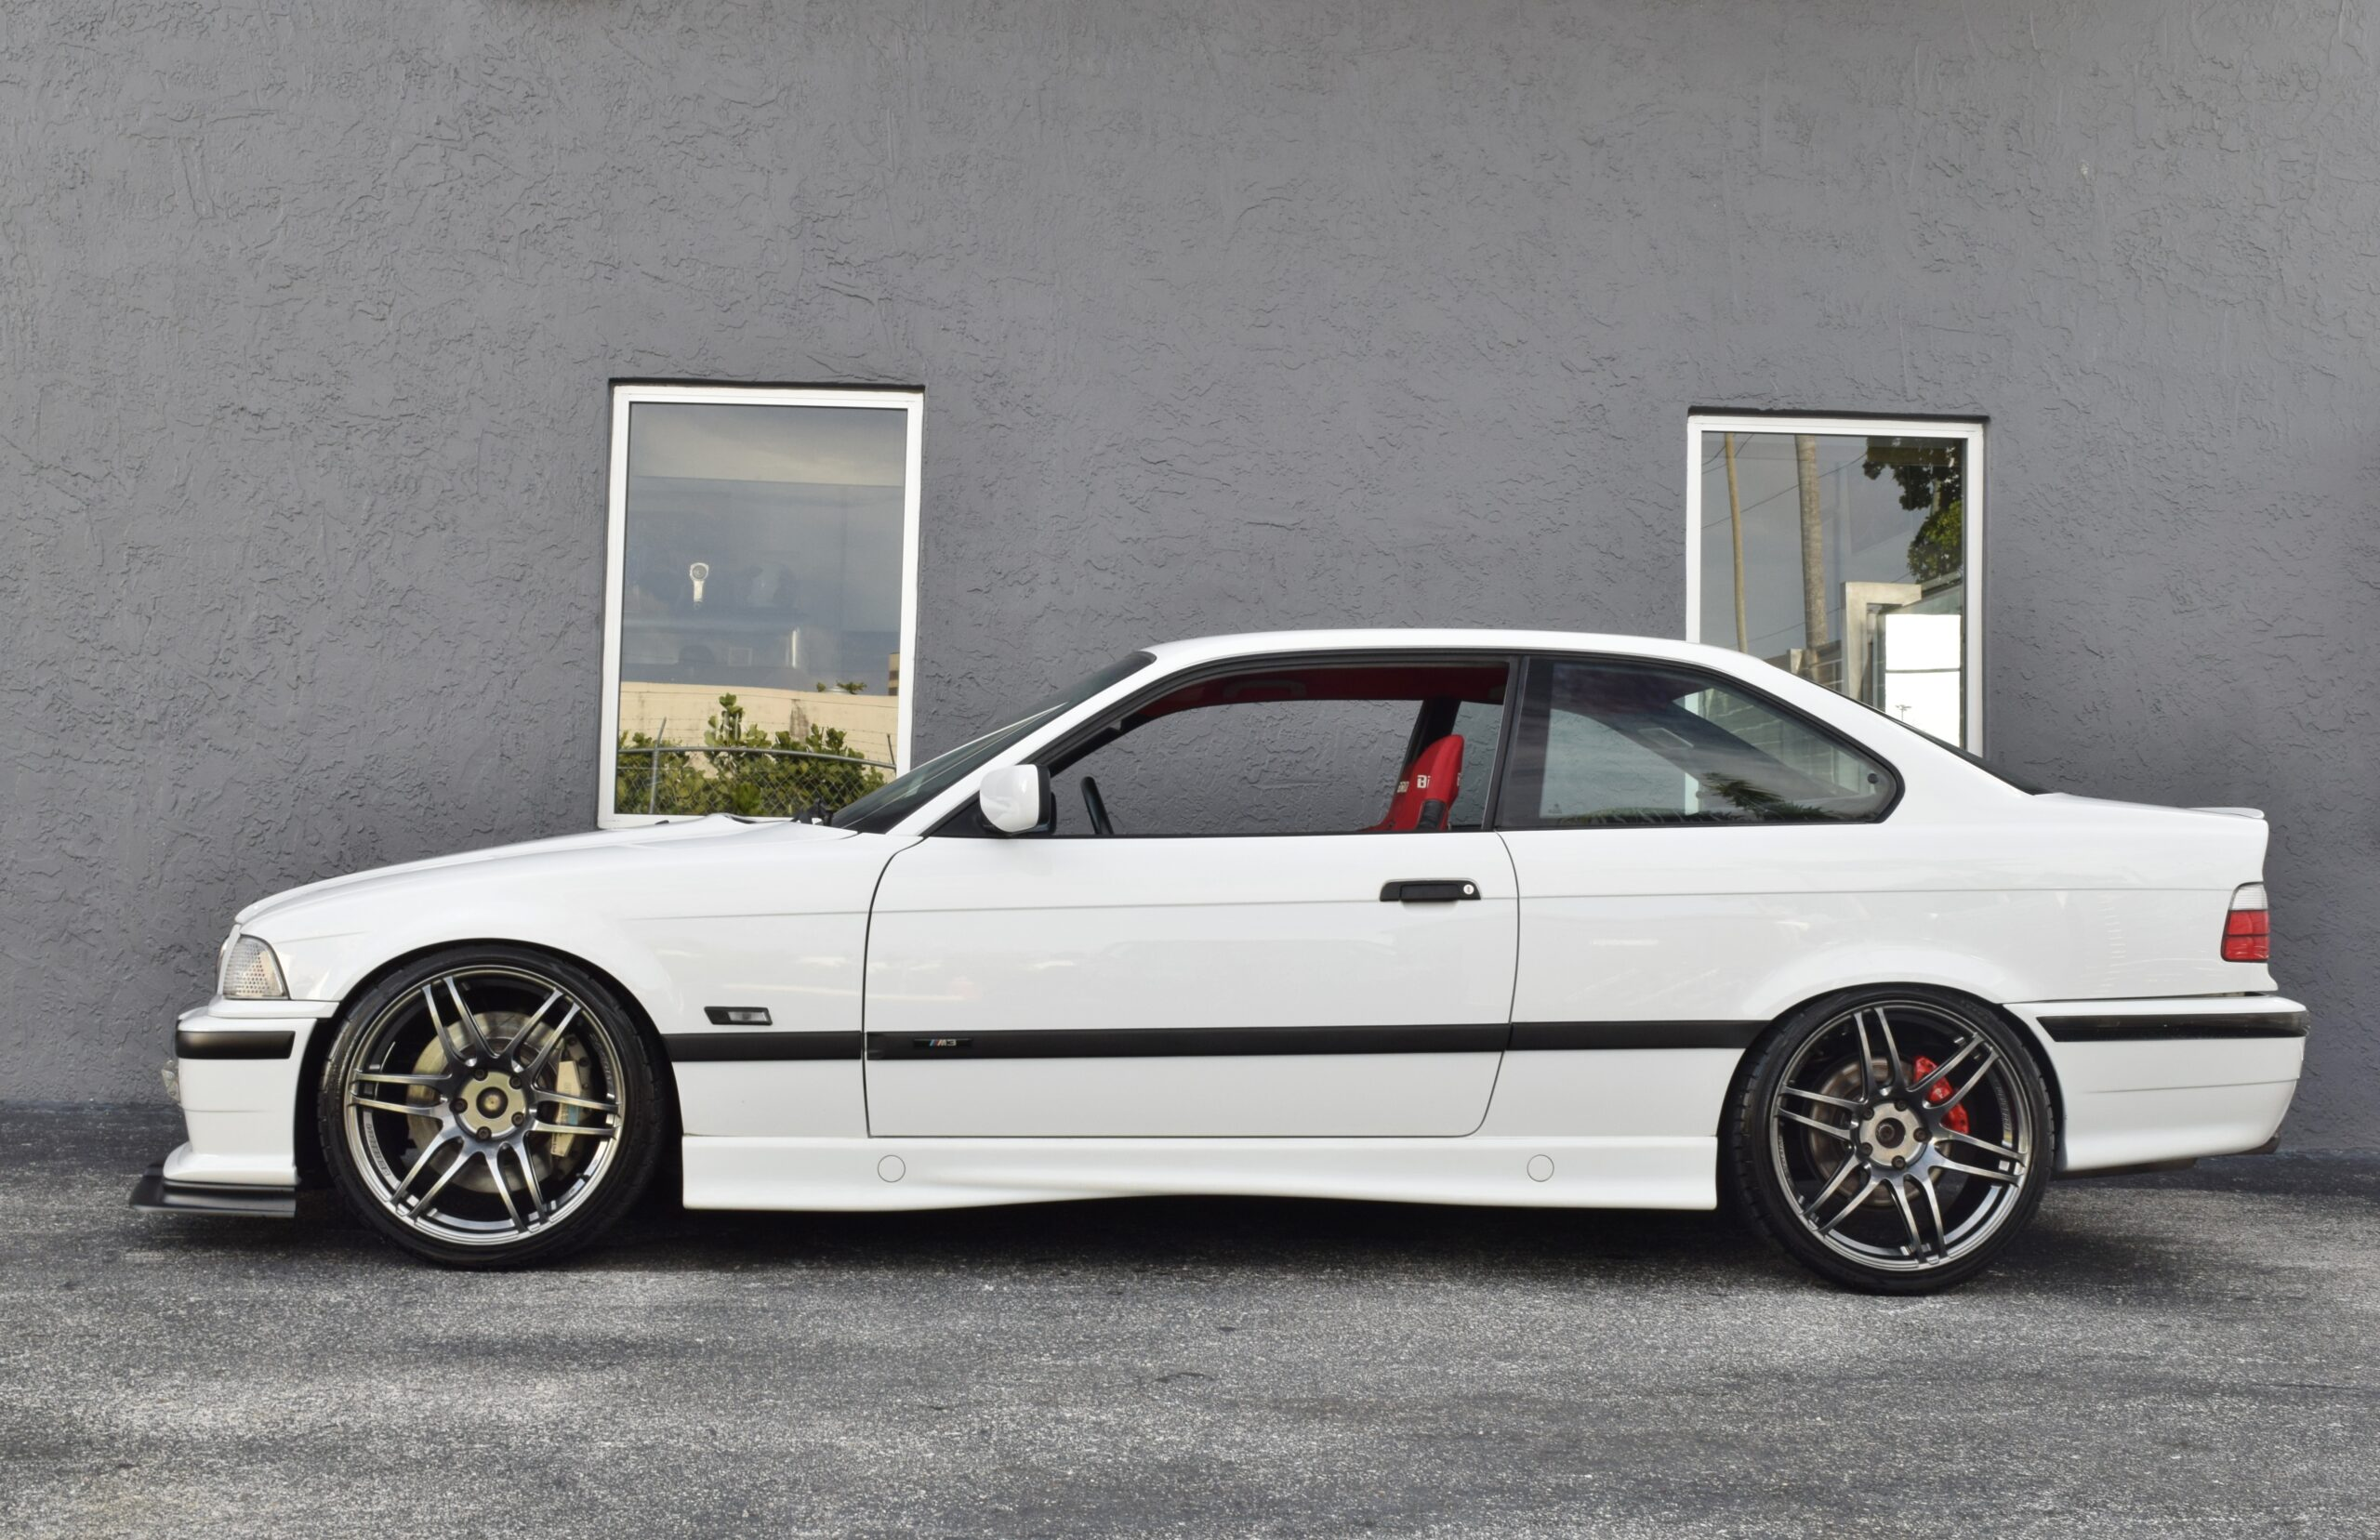 1995 BMW 3-Series E36 SR20DET TURBO 2.1L Bore HKS-6 Speed Manual-Big Brake Kit-Weds Sport Wheels-Bride Seats-Cold AC